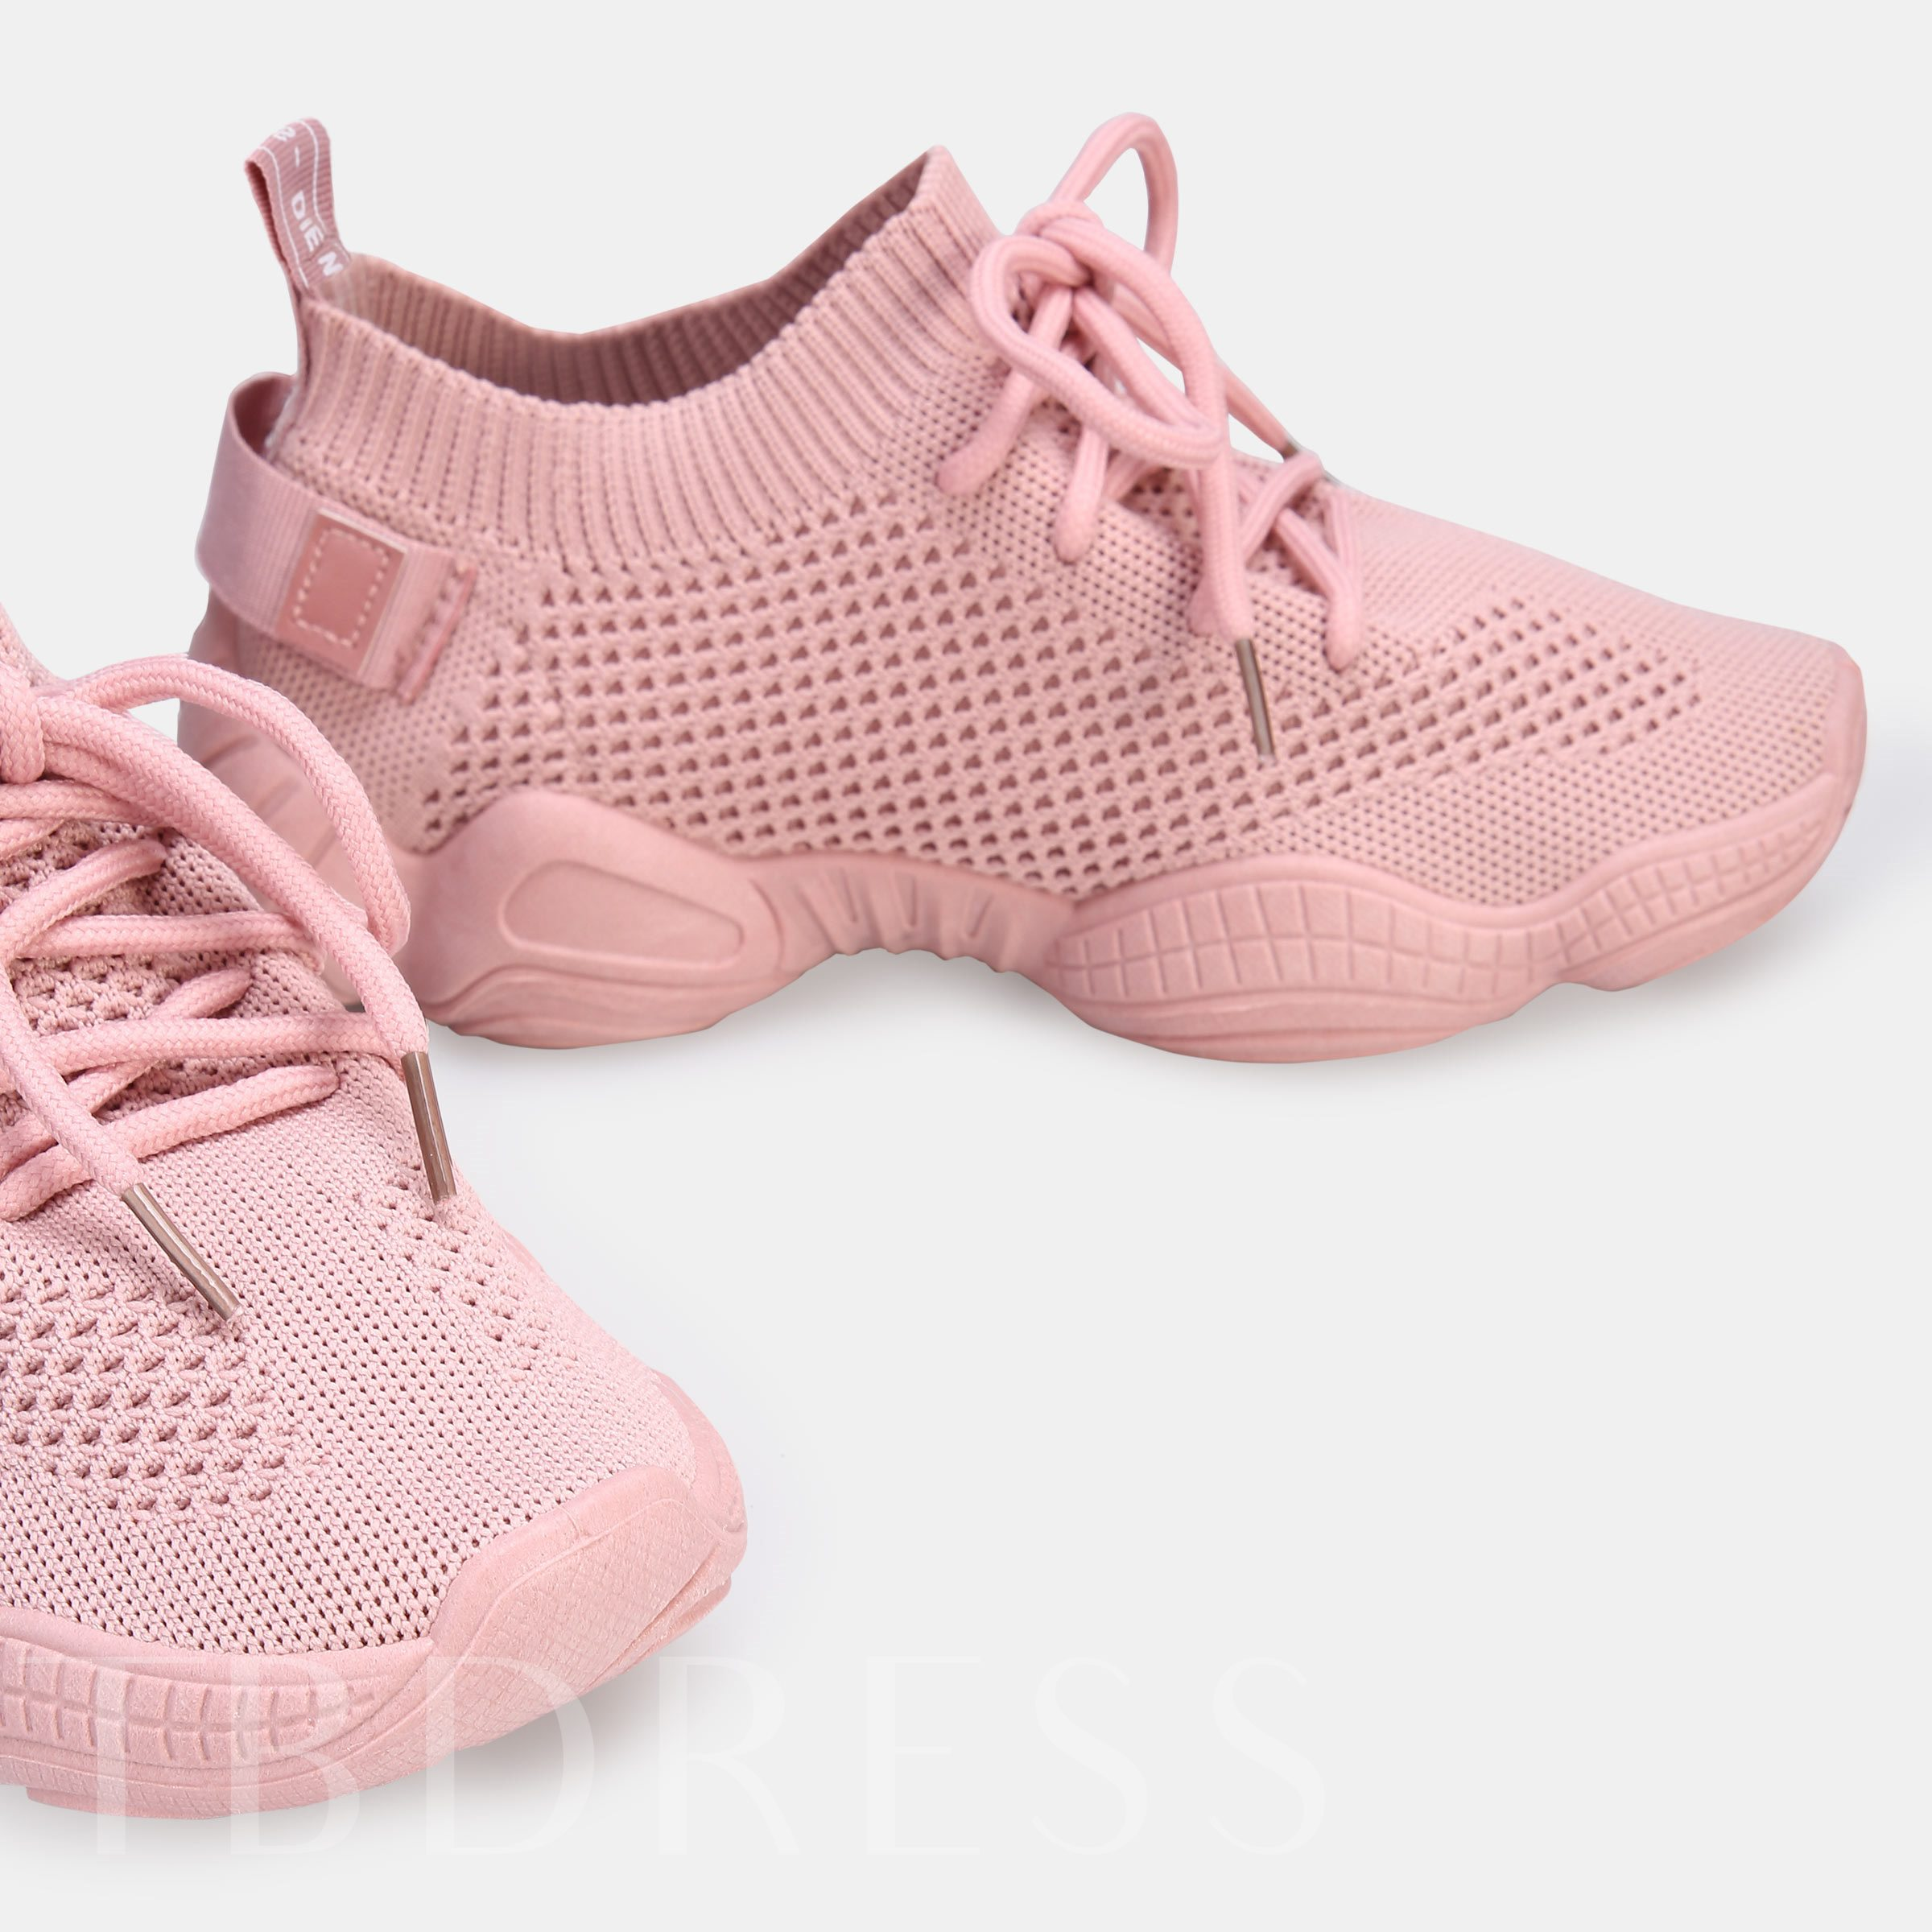 Lace-Up Low-Cut Upper Round Toe Casual Women's Sneakers